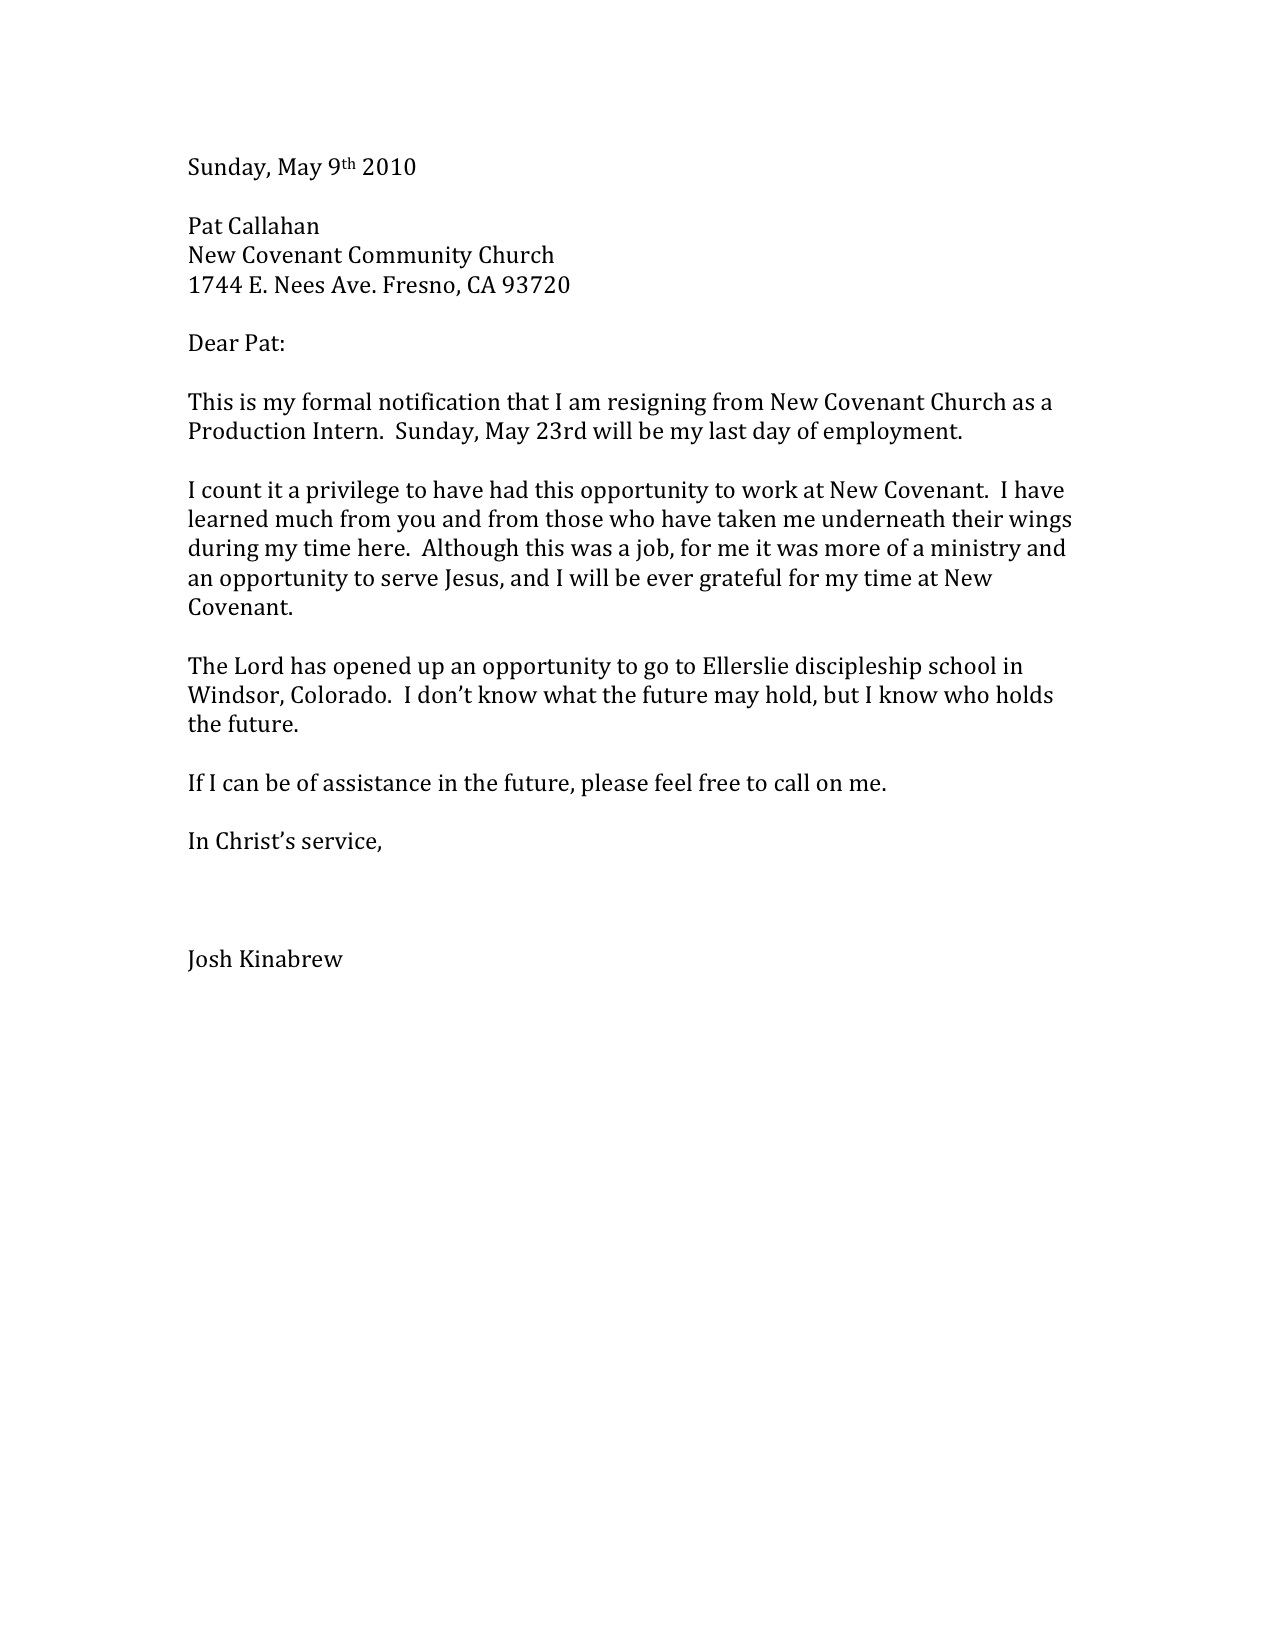 Attractive Professional Resignation Letter And Free Letter Of Resignation Template  Resignation Letter